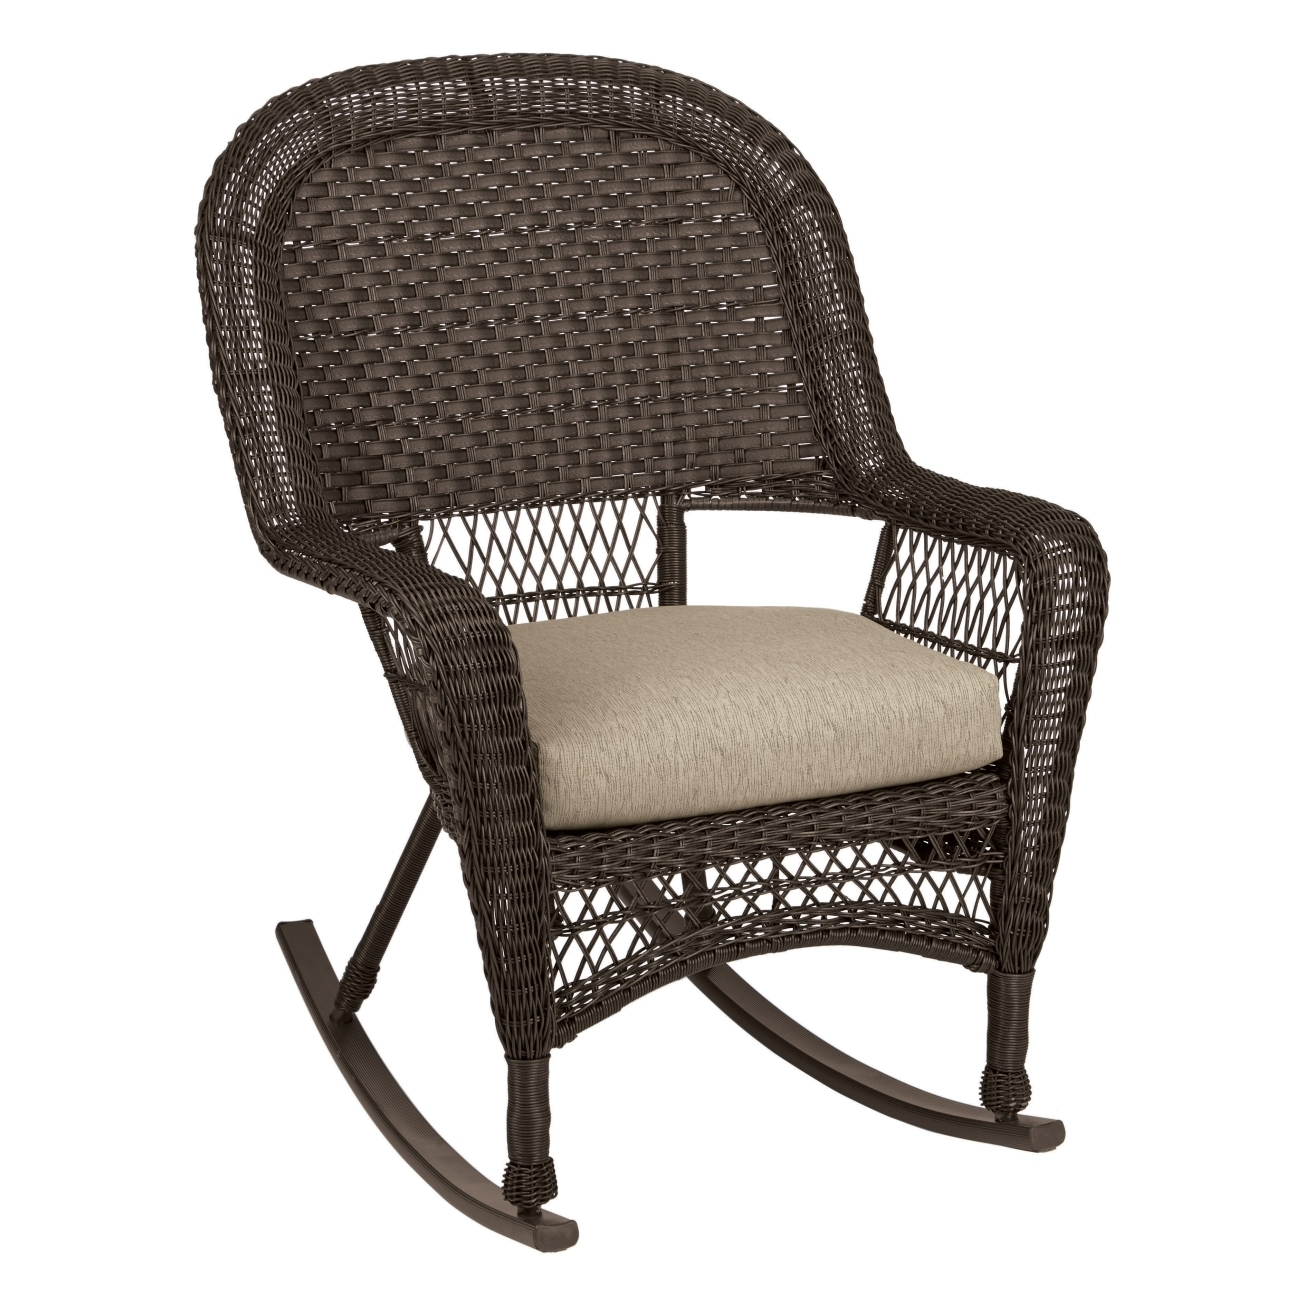 Chair | Rattan Chair Wicker Furniture Resin Wicker Rocking Chairs For Outdoor Vinyl Rocking Chairs (View 3 of 15)